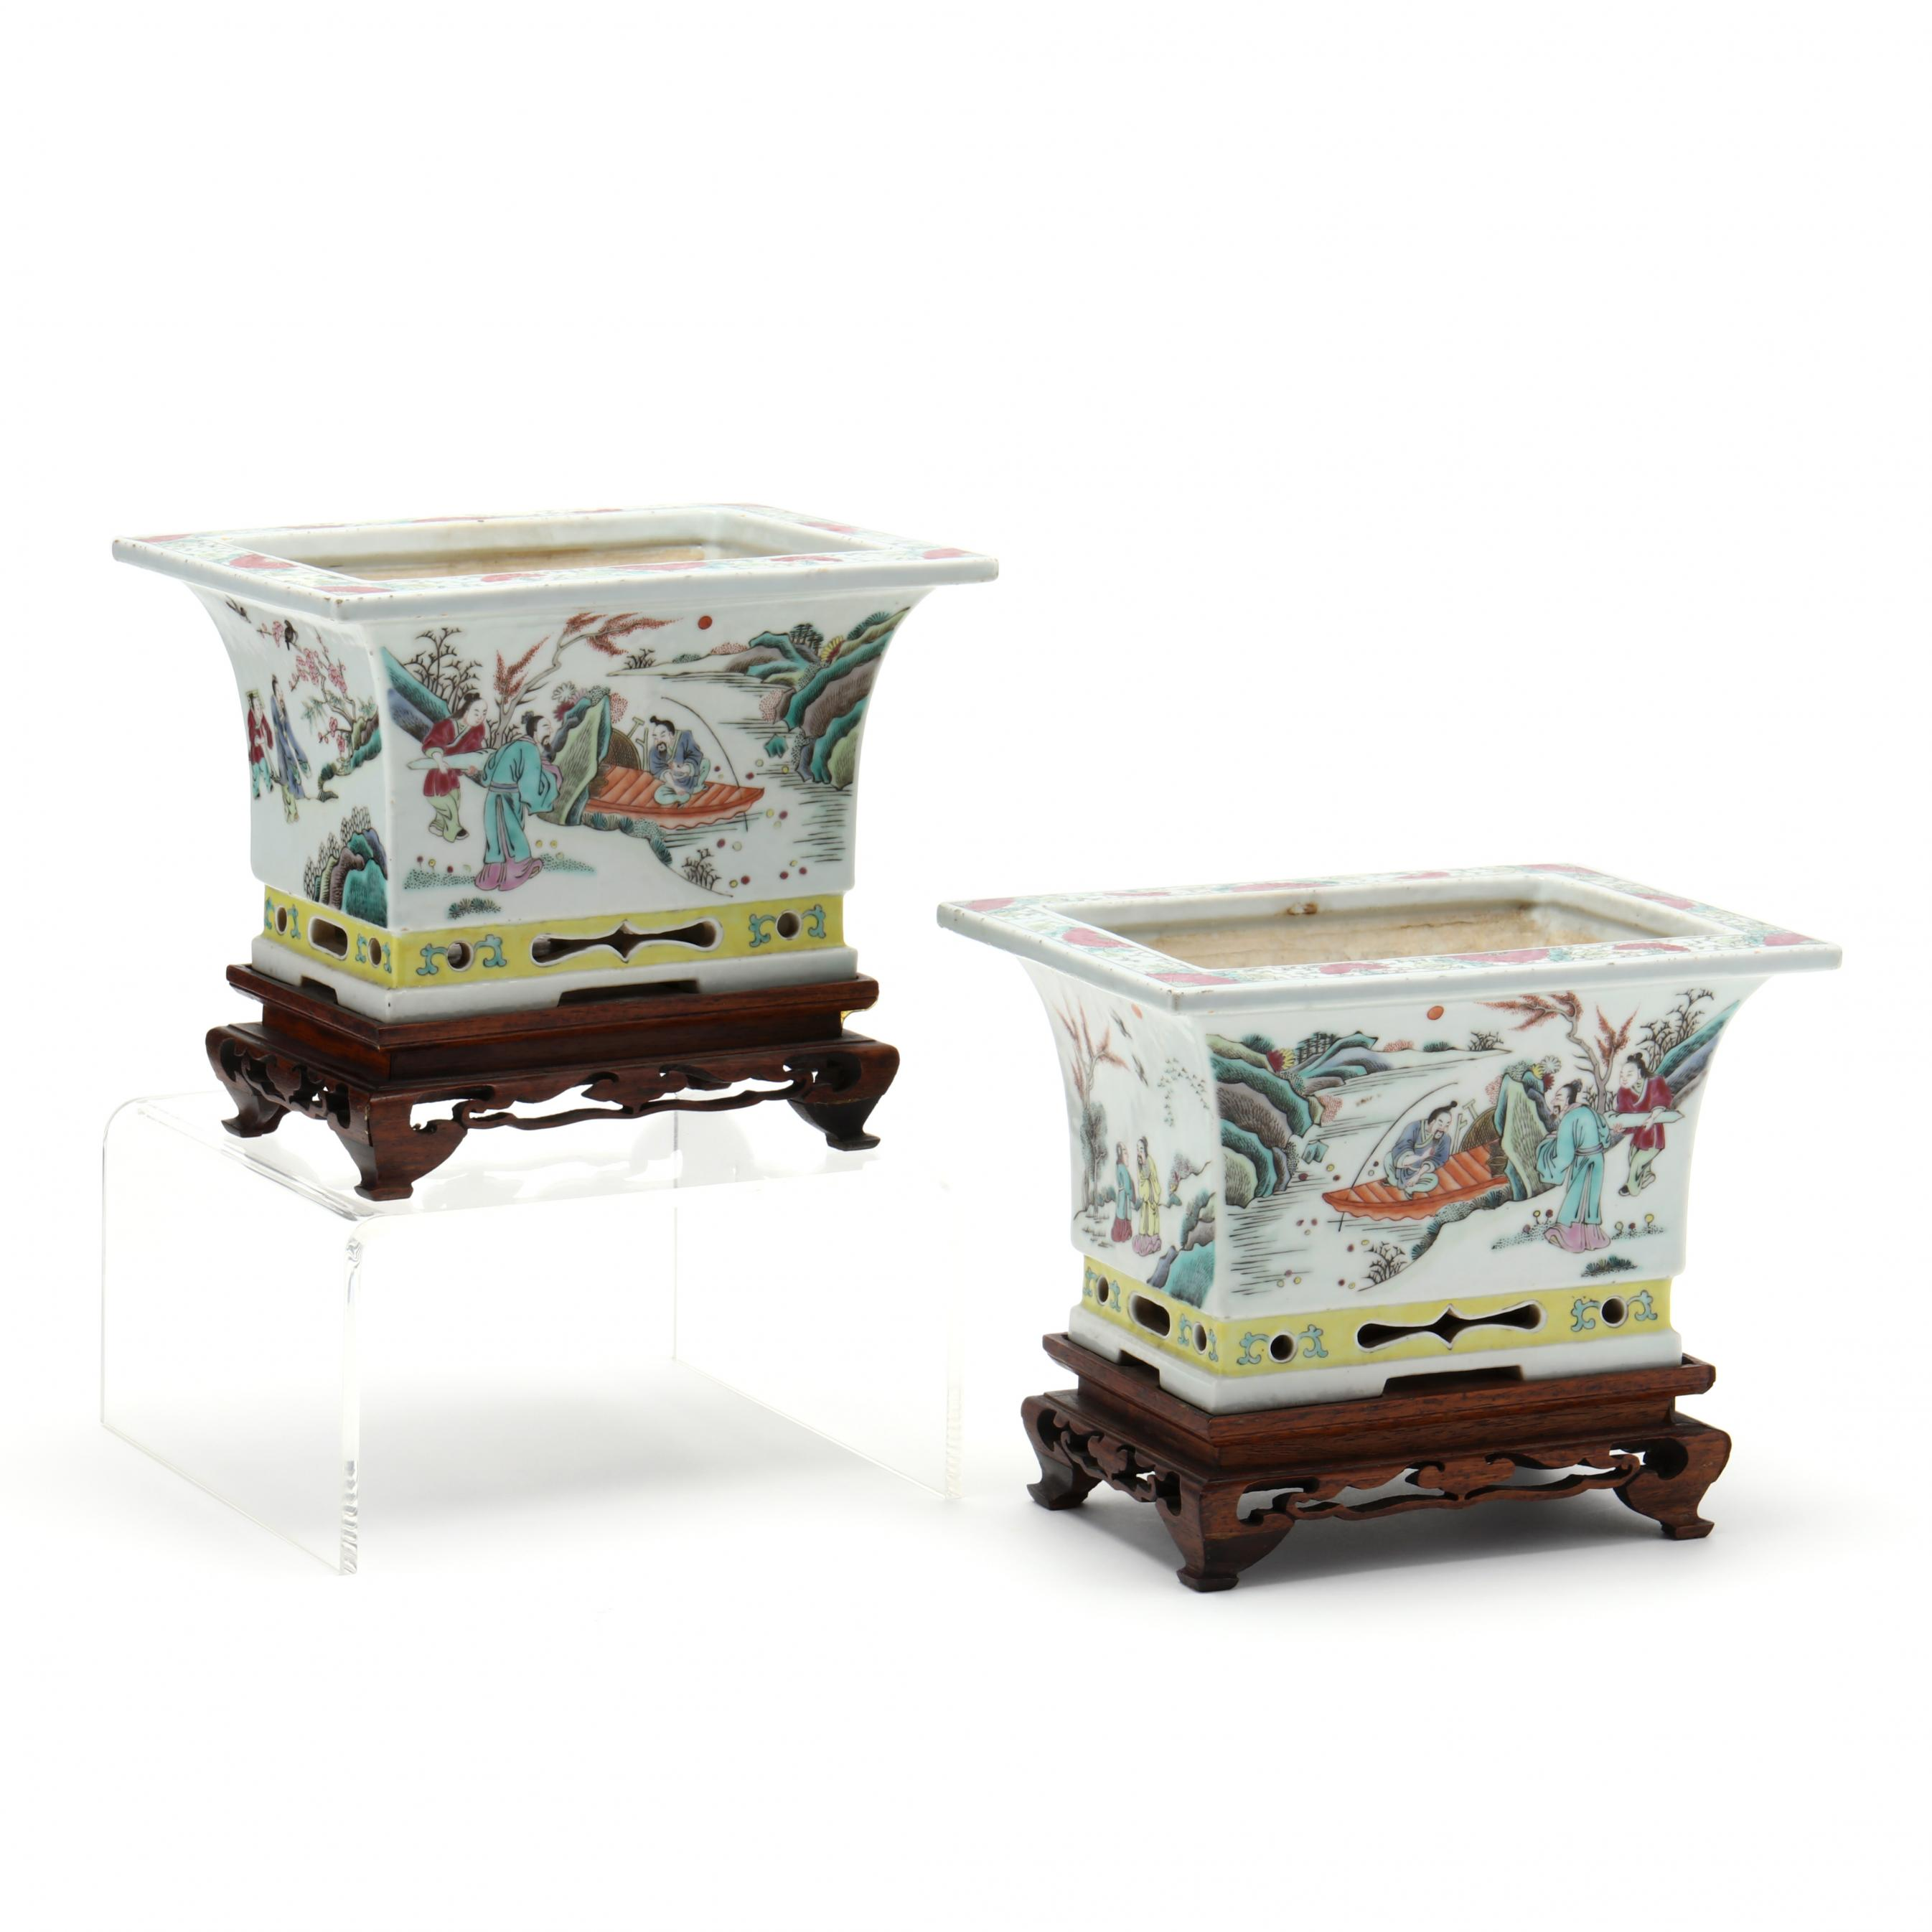 a-pair-of-chinese-porcelain-jardinieres-with-stands